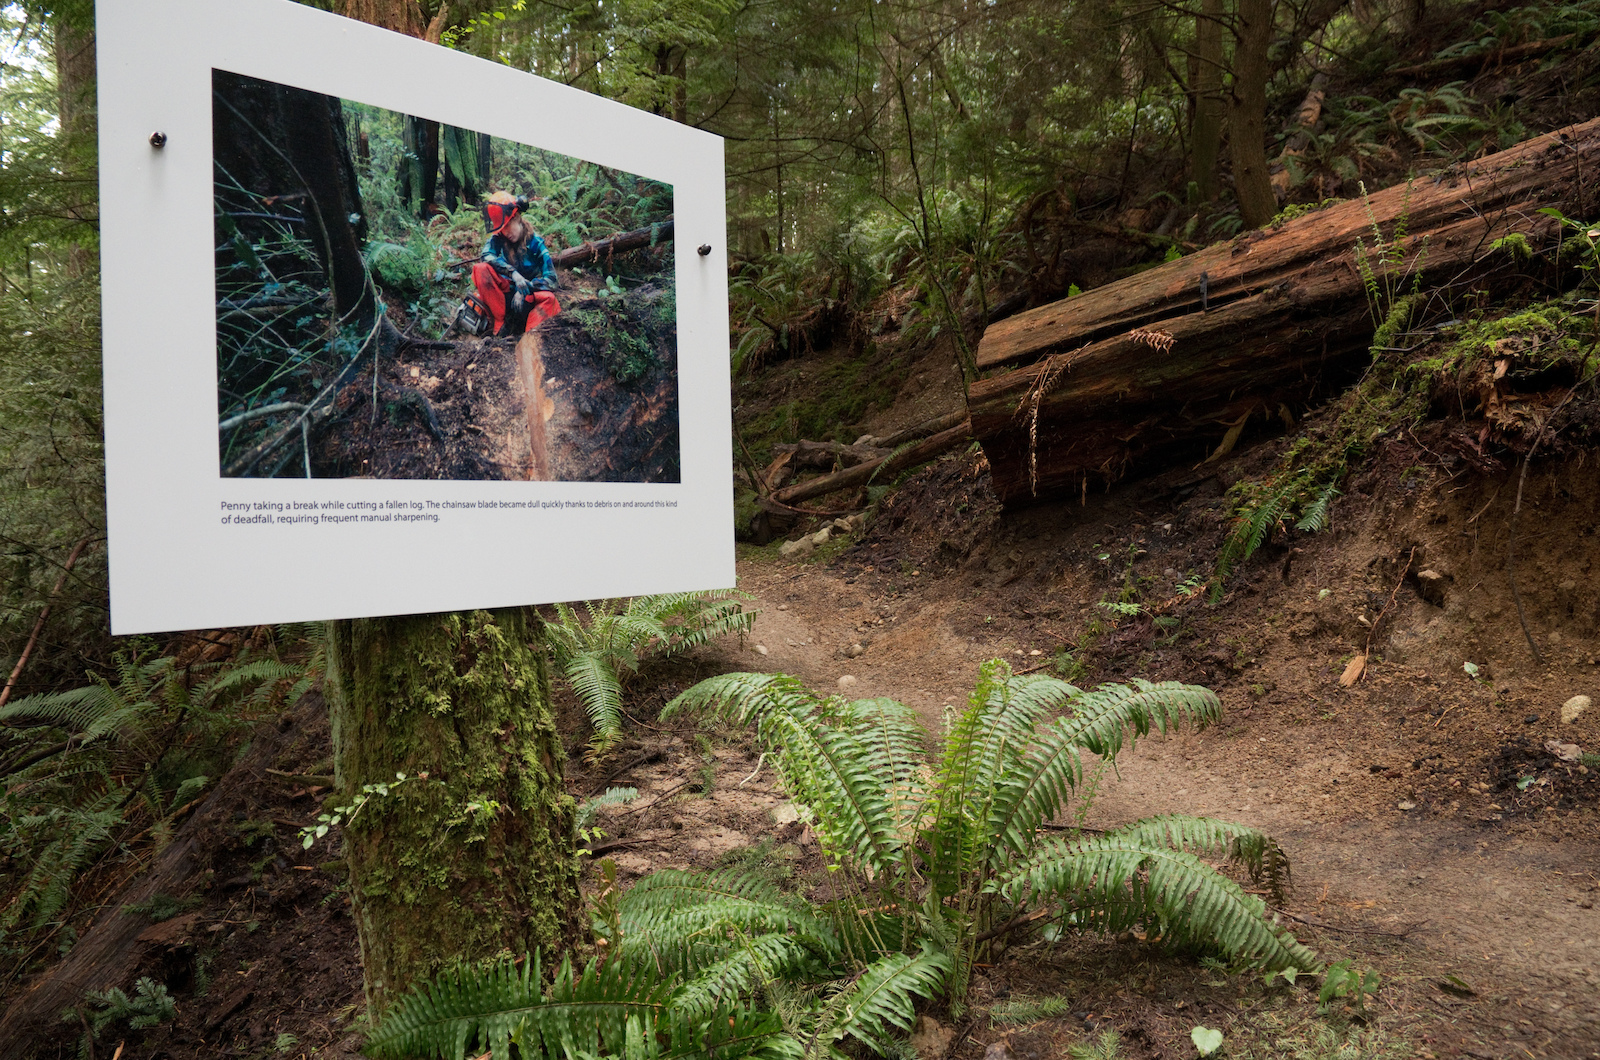 A photo of Penny chainsawing a fallen log in front of a similar log.